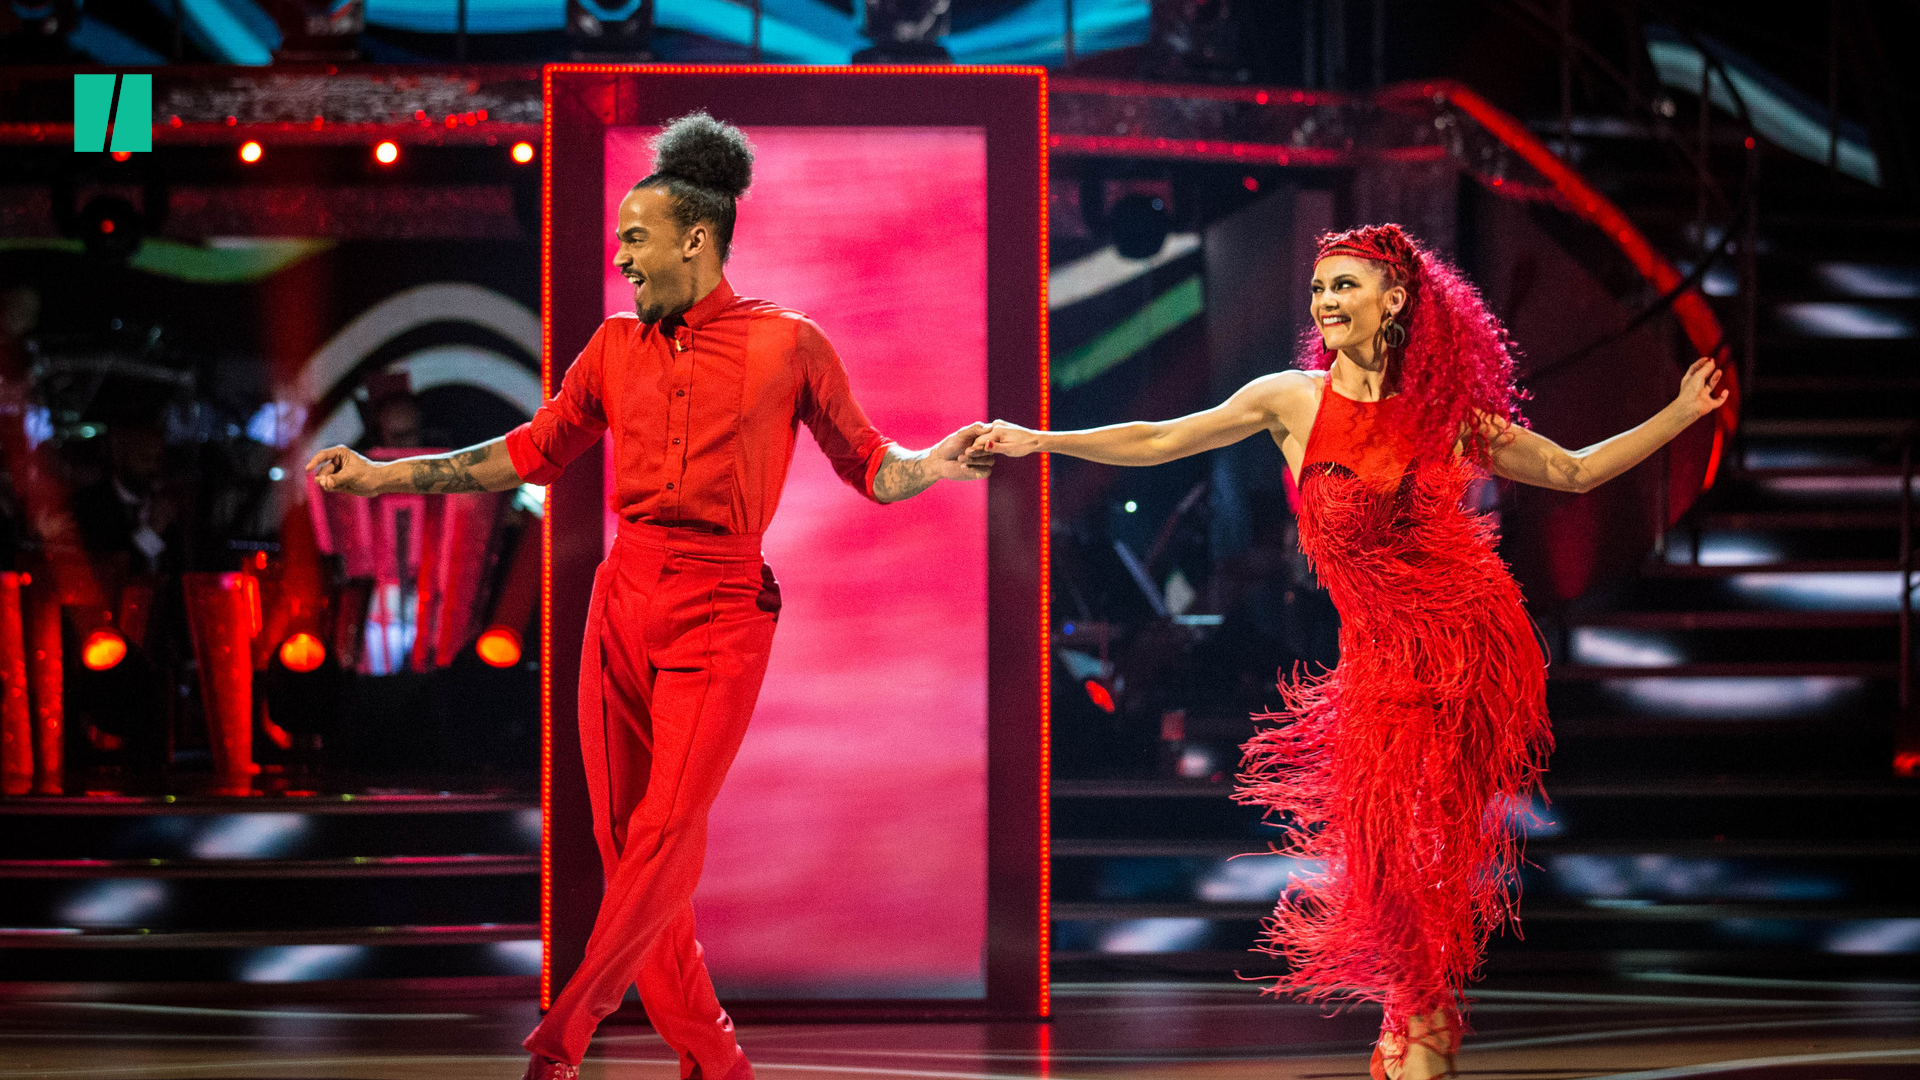 Strictly Come Dancing Week 5 Song And Dance Choices Revealed